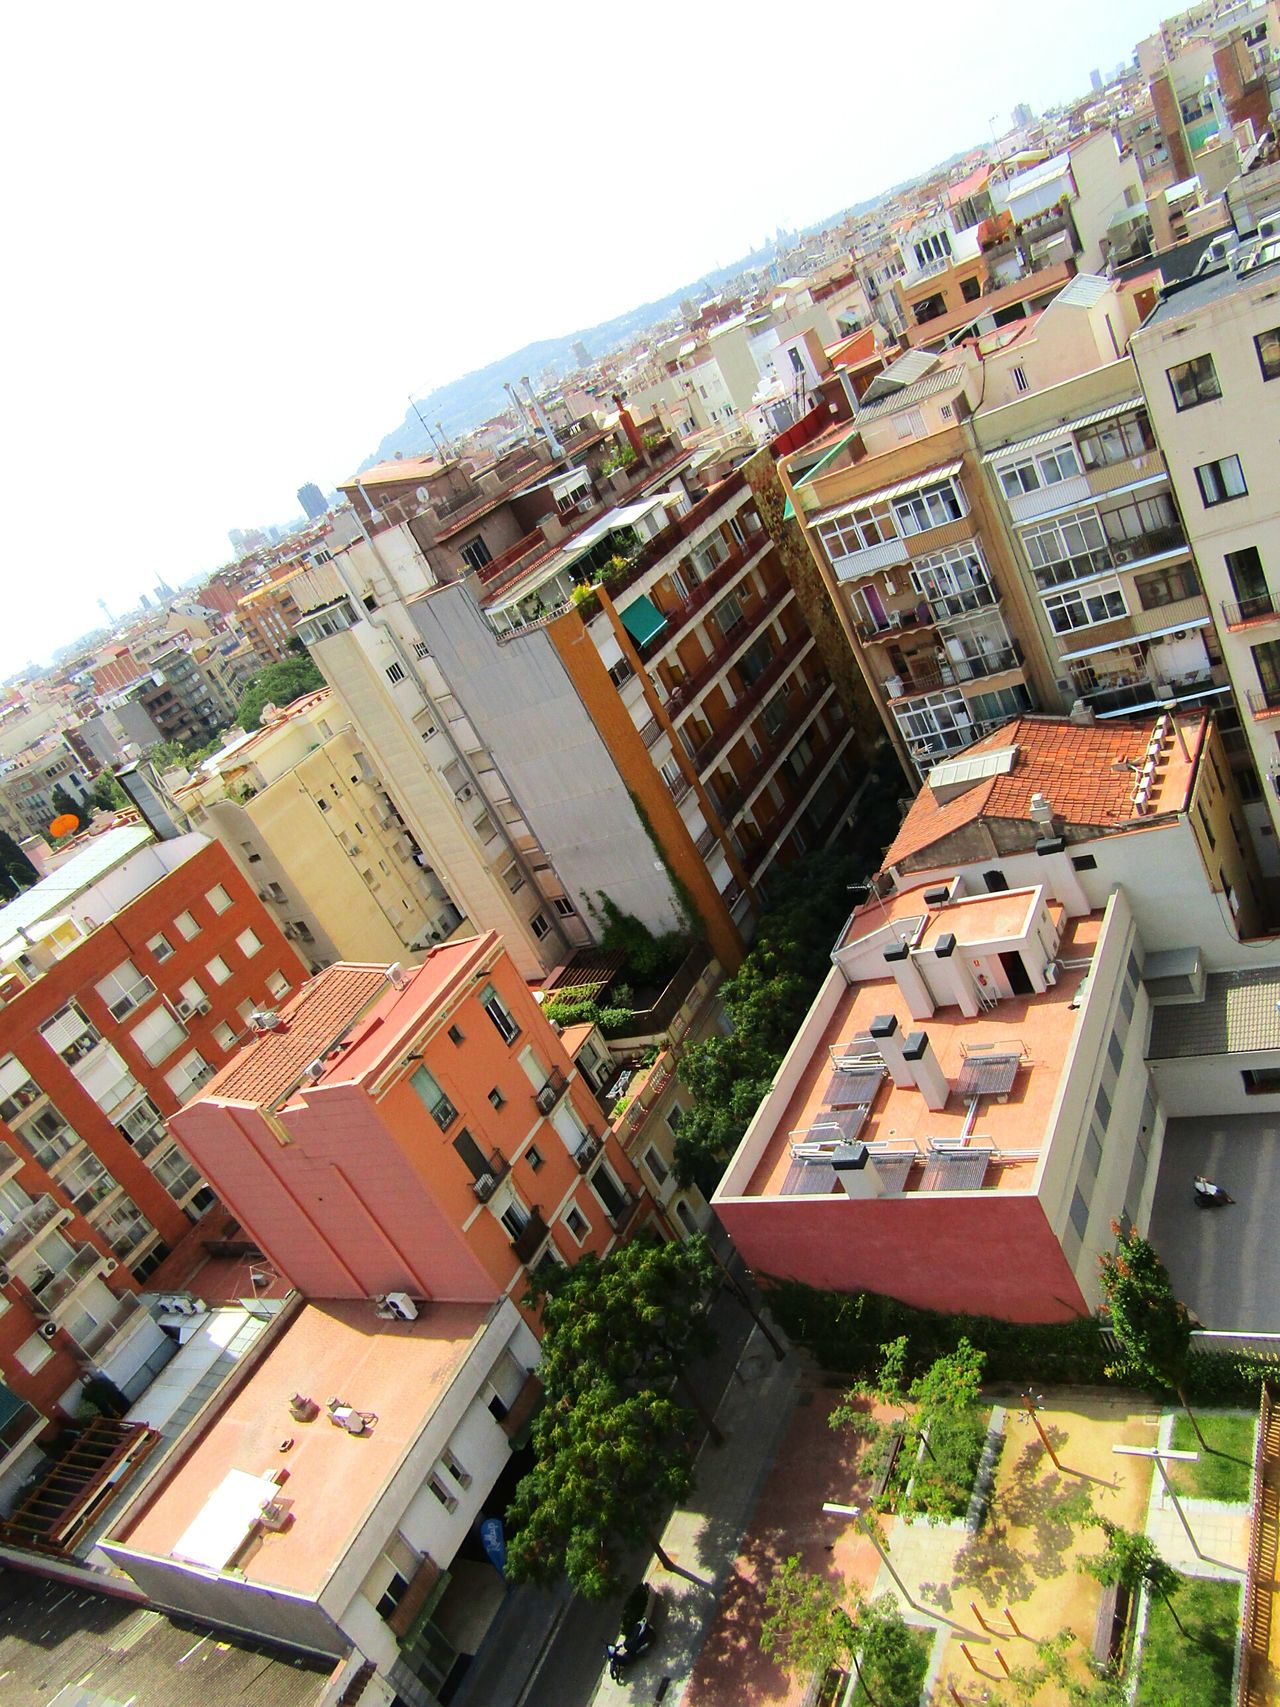 Houses City Cityview Beautifulview Citytown Architecturephotography Building And Sky Buildingphotography A Bird's Eye View Streetphotography SPAIN Barcelona Eyeemcollection From My Point Of View Eye4photography  Landscape Window View